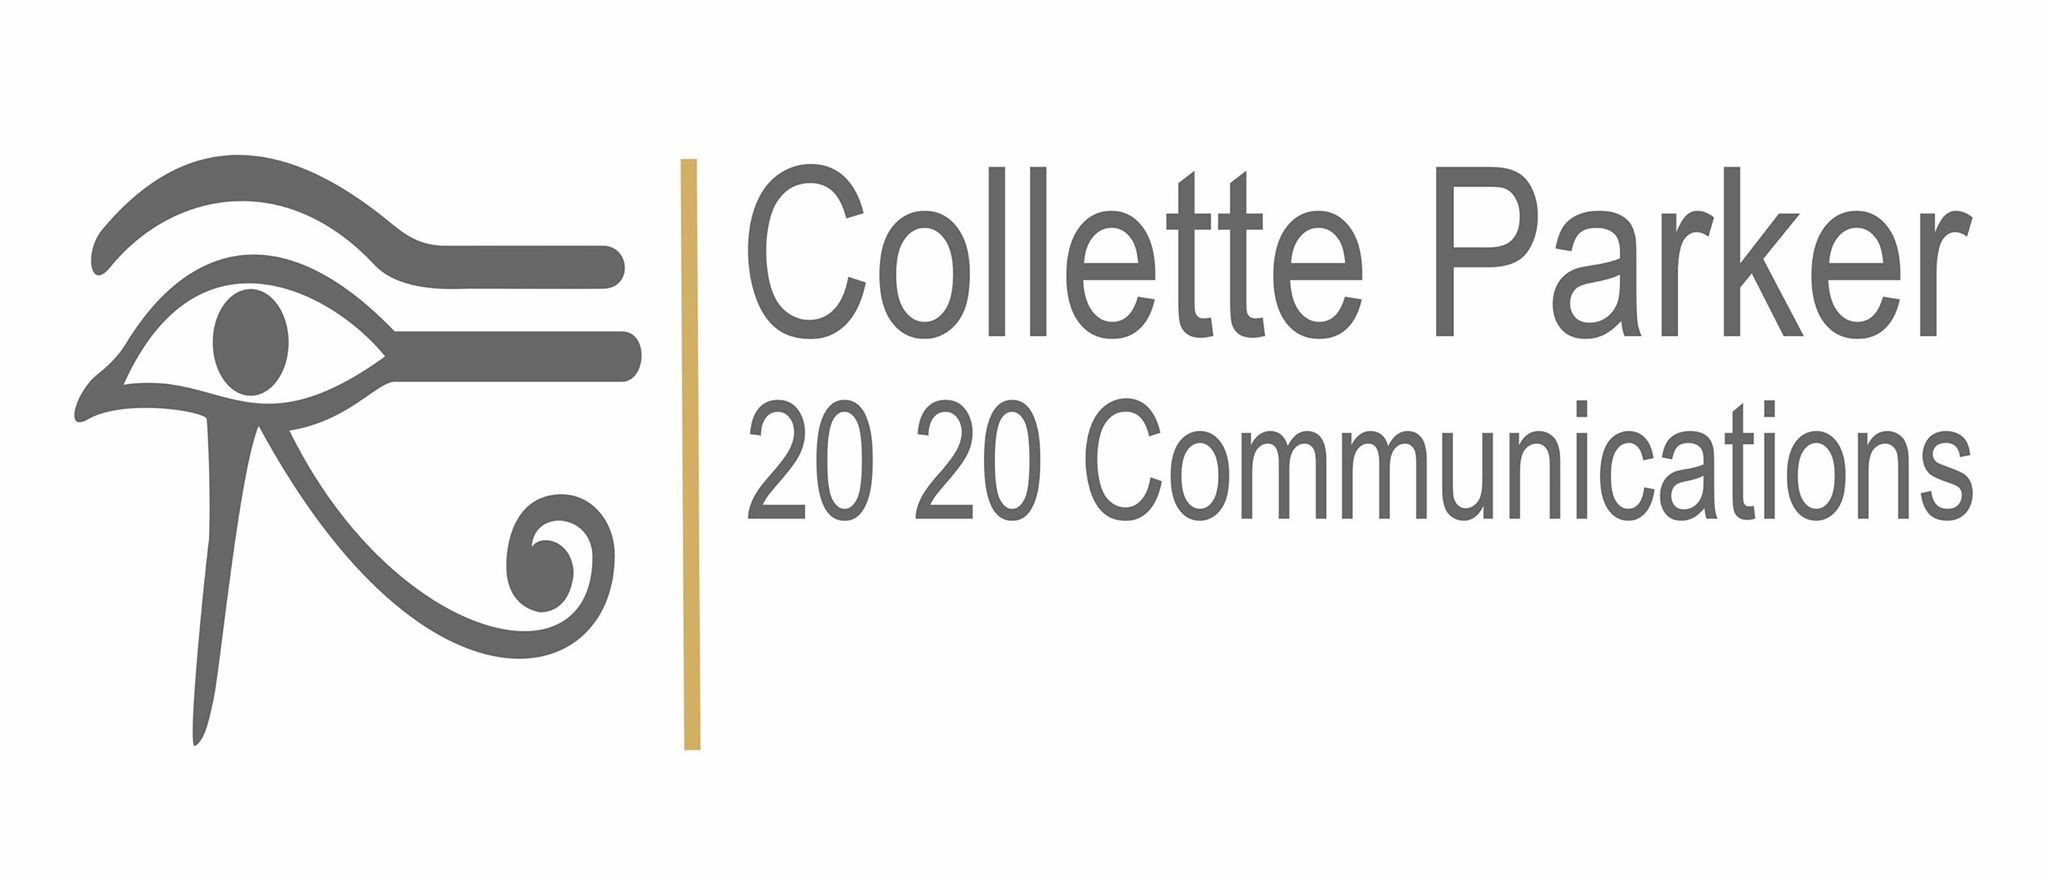 Collette Parker 2020 Communications